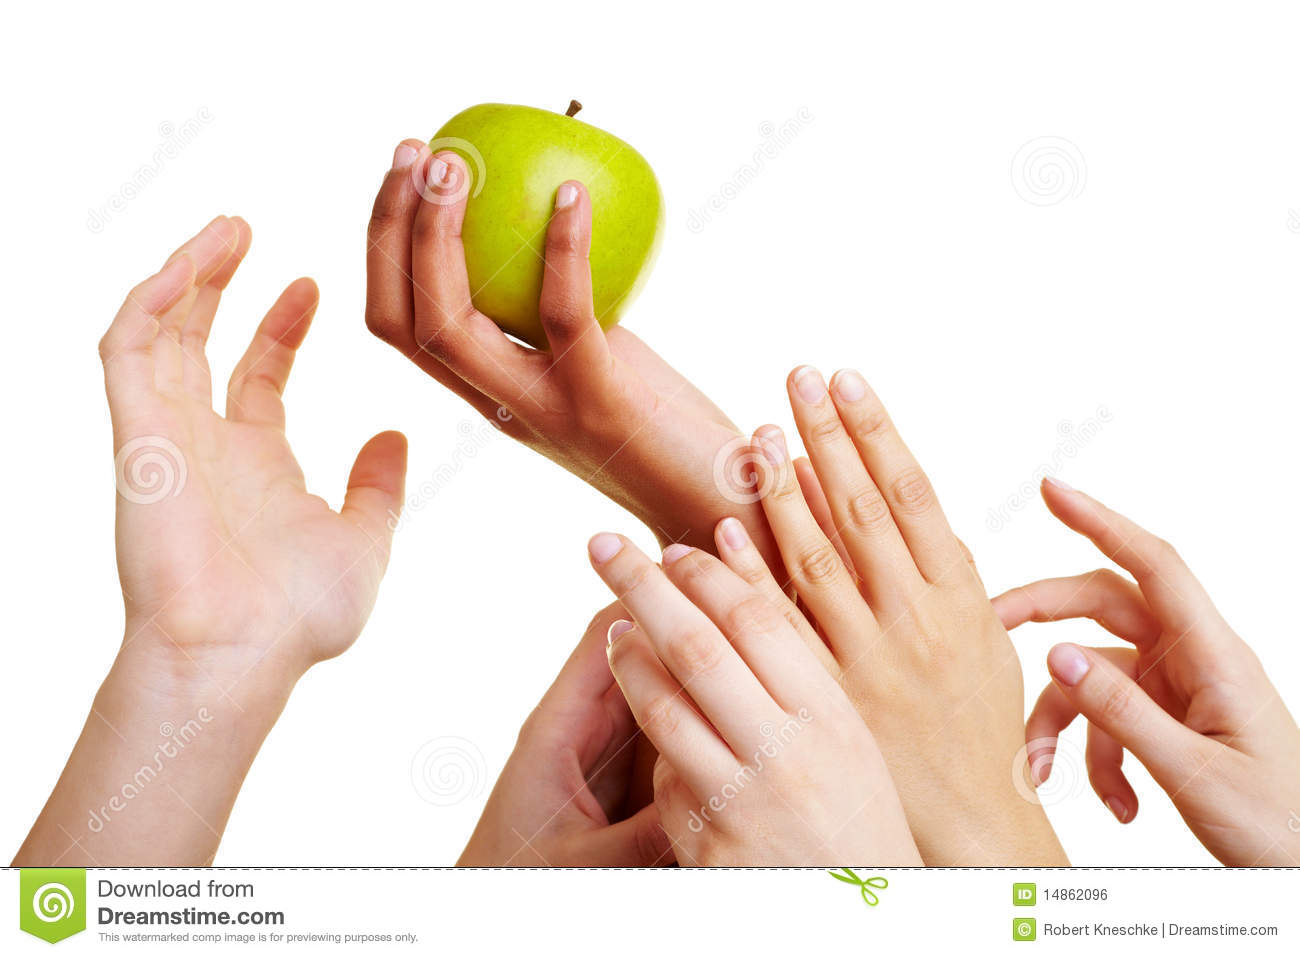 Hands reaching for an apple